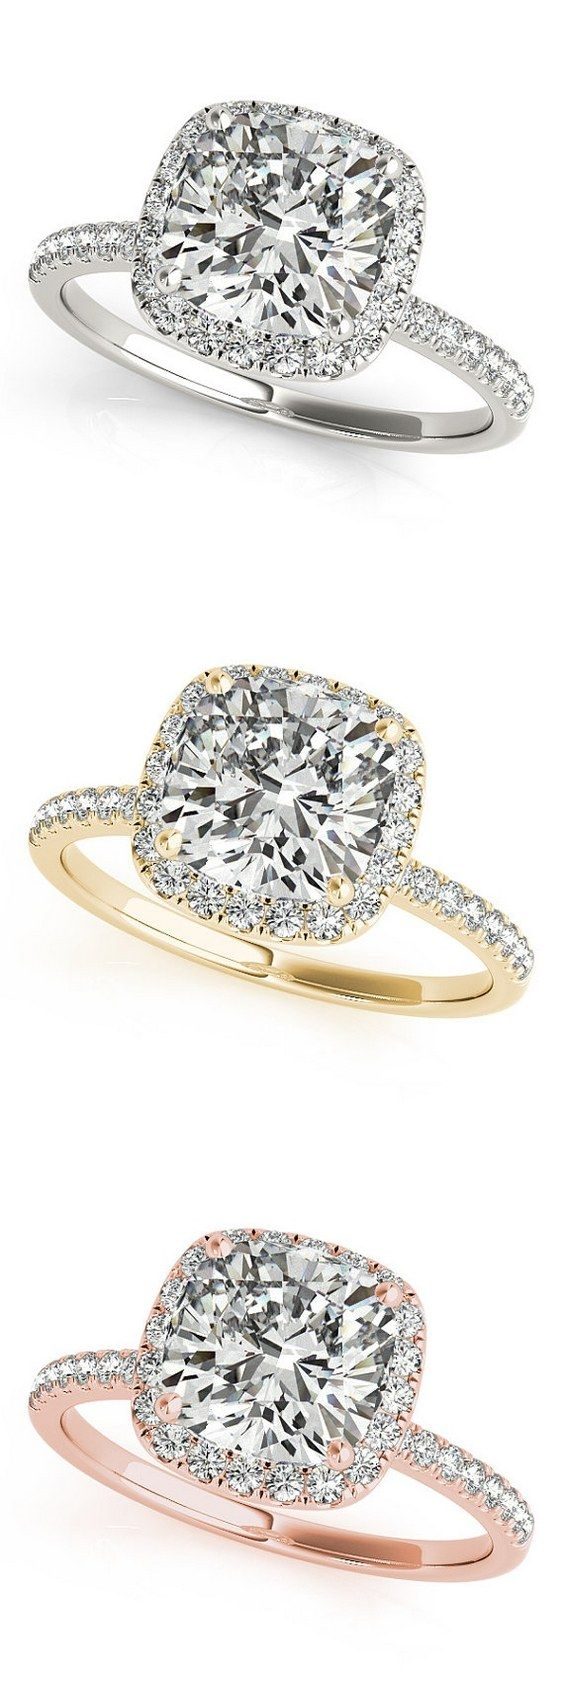 engagement wedding rings wedding rings under Cushion Cut Engagement Ring